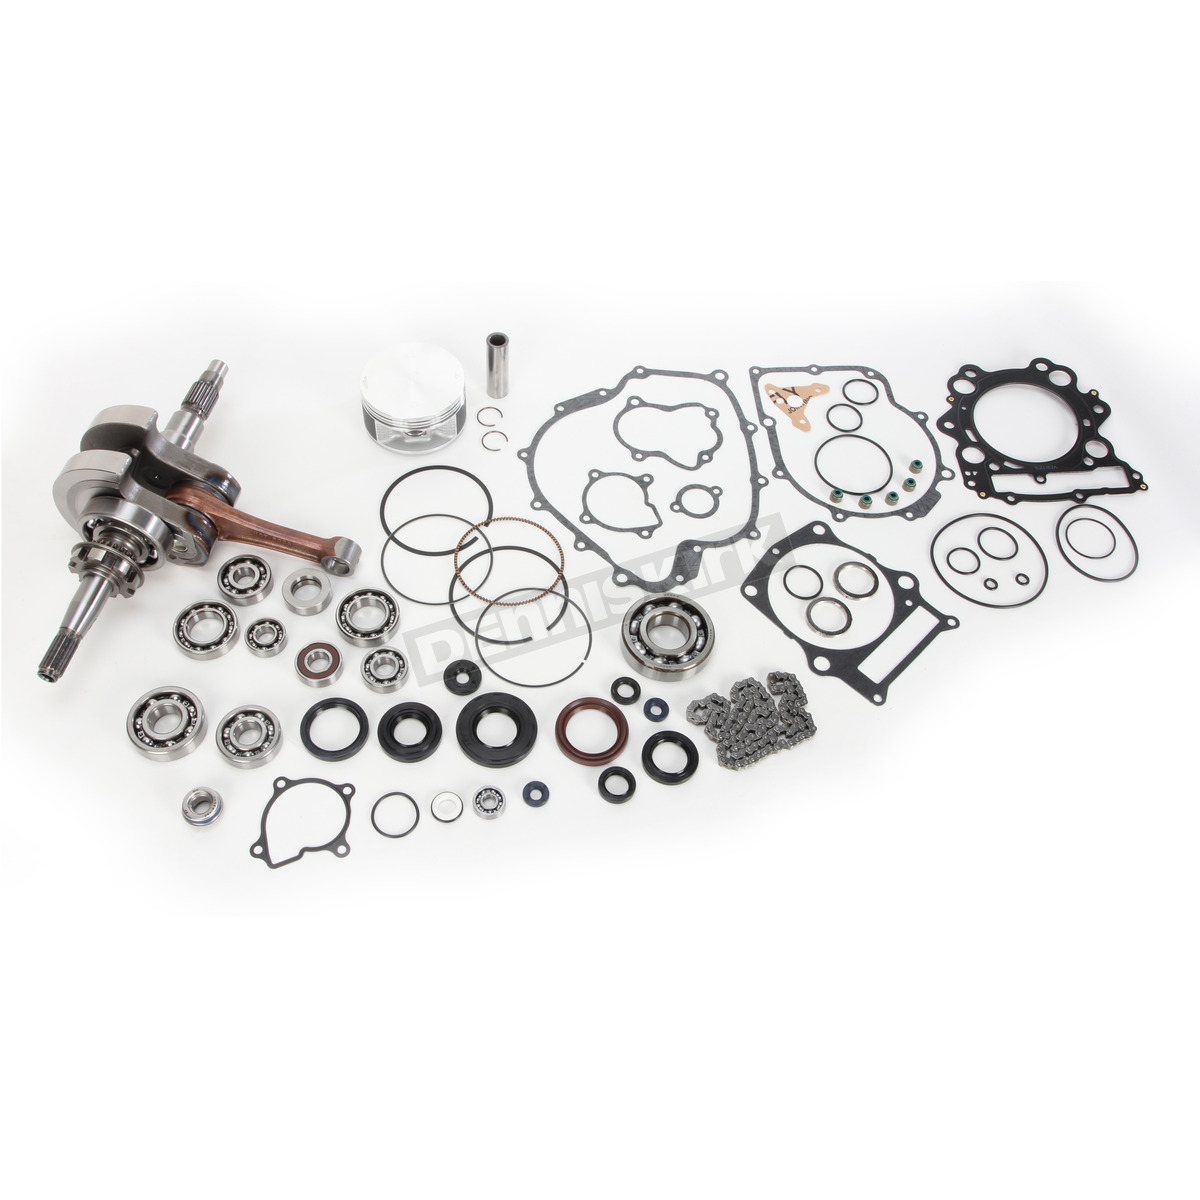 Wrench Rabbit Complete Engine Rebuild Kit 100mm Bore